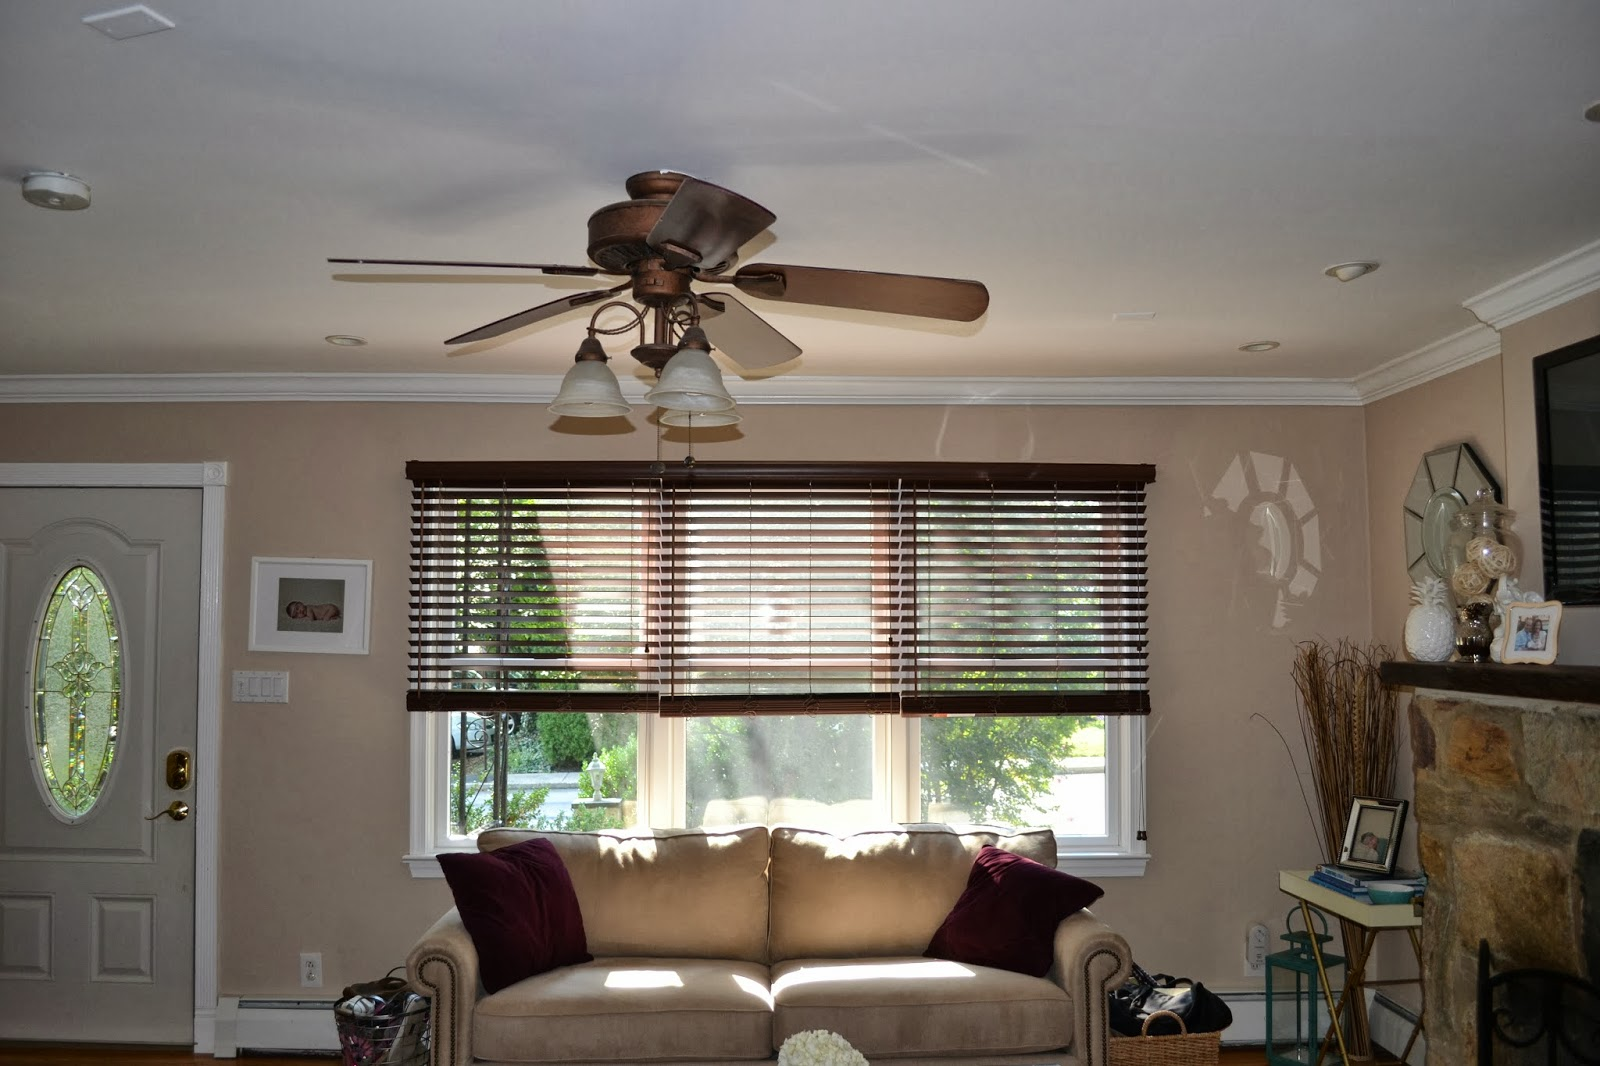 100 head in the ceiling fan luscious life u0026 decor septe